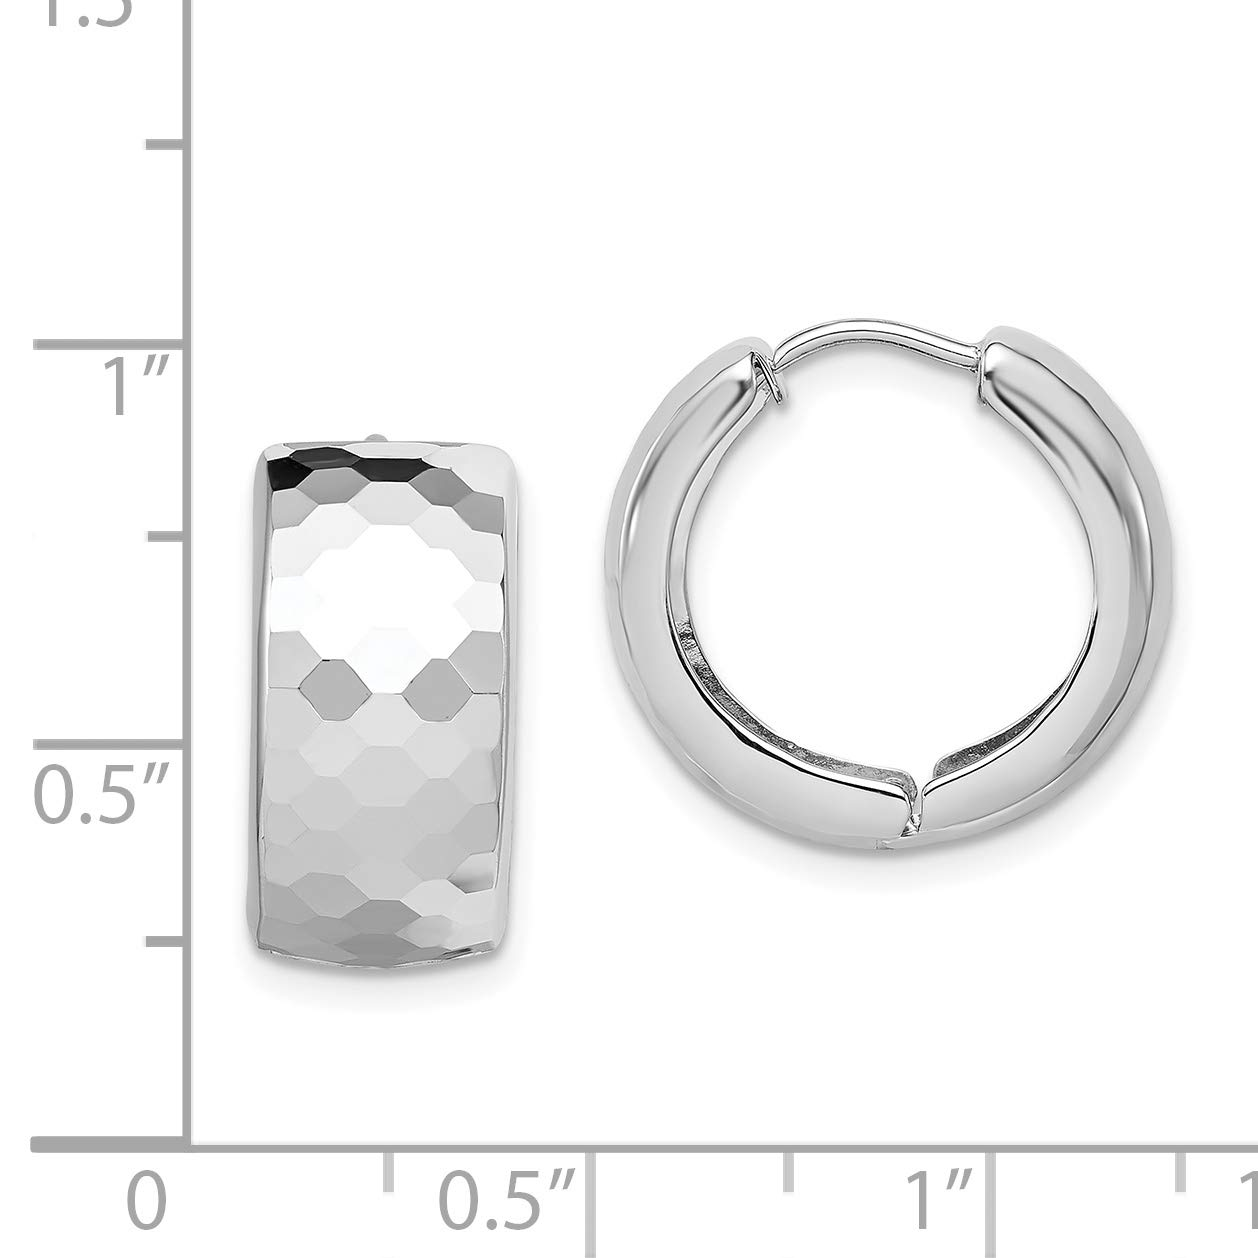 Sterling Silver Polished Patterned Hinged Hoop Earrings and a pair of 4mm CZ Stud Earrings